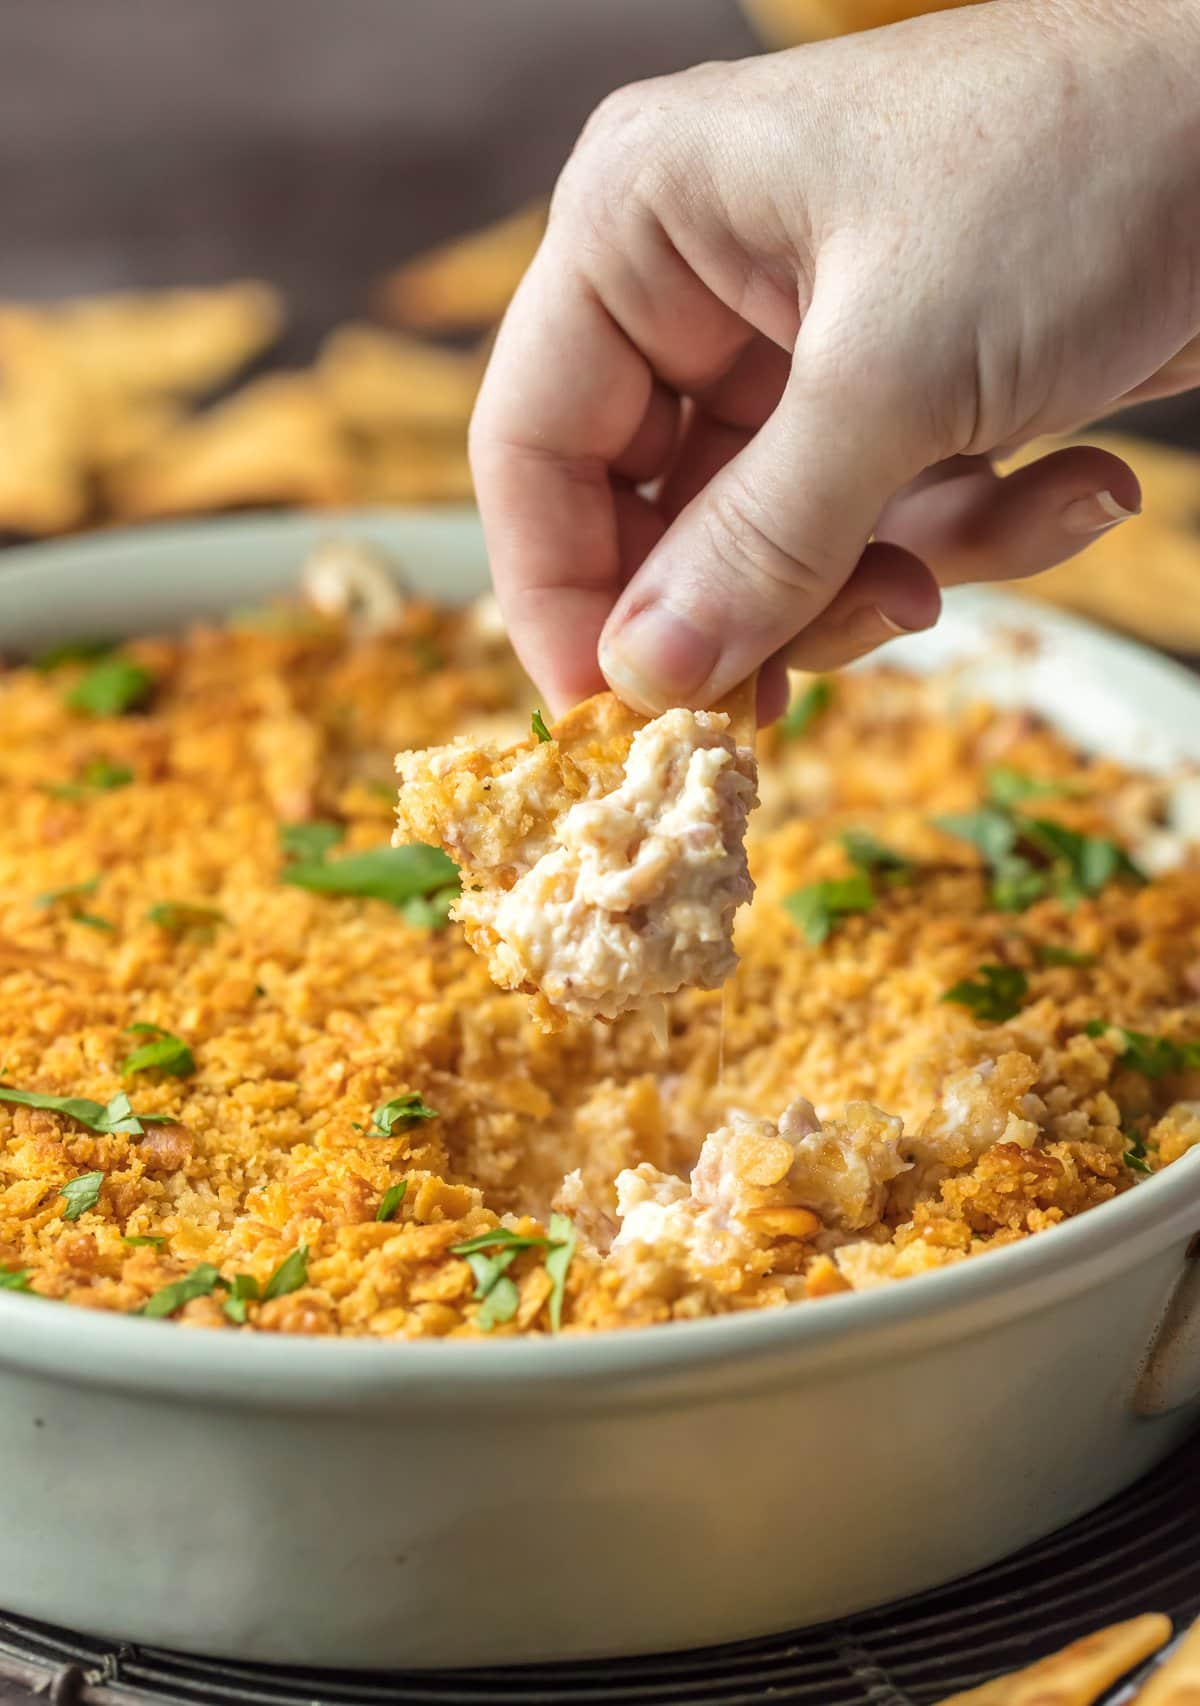 This CHICKEN CORDON BLEU DIP is so tasty and fun! The perfect tailgating dip, tailor made for the Super Bowl, holiday parties, and beyond! Loaded with chicken, ham, swiss, and a white wine sauce!